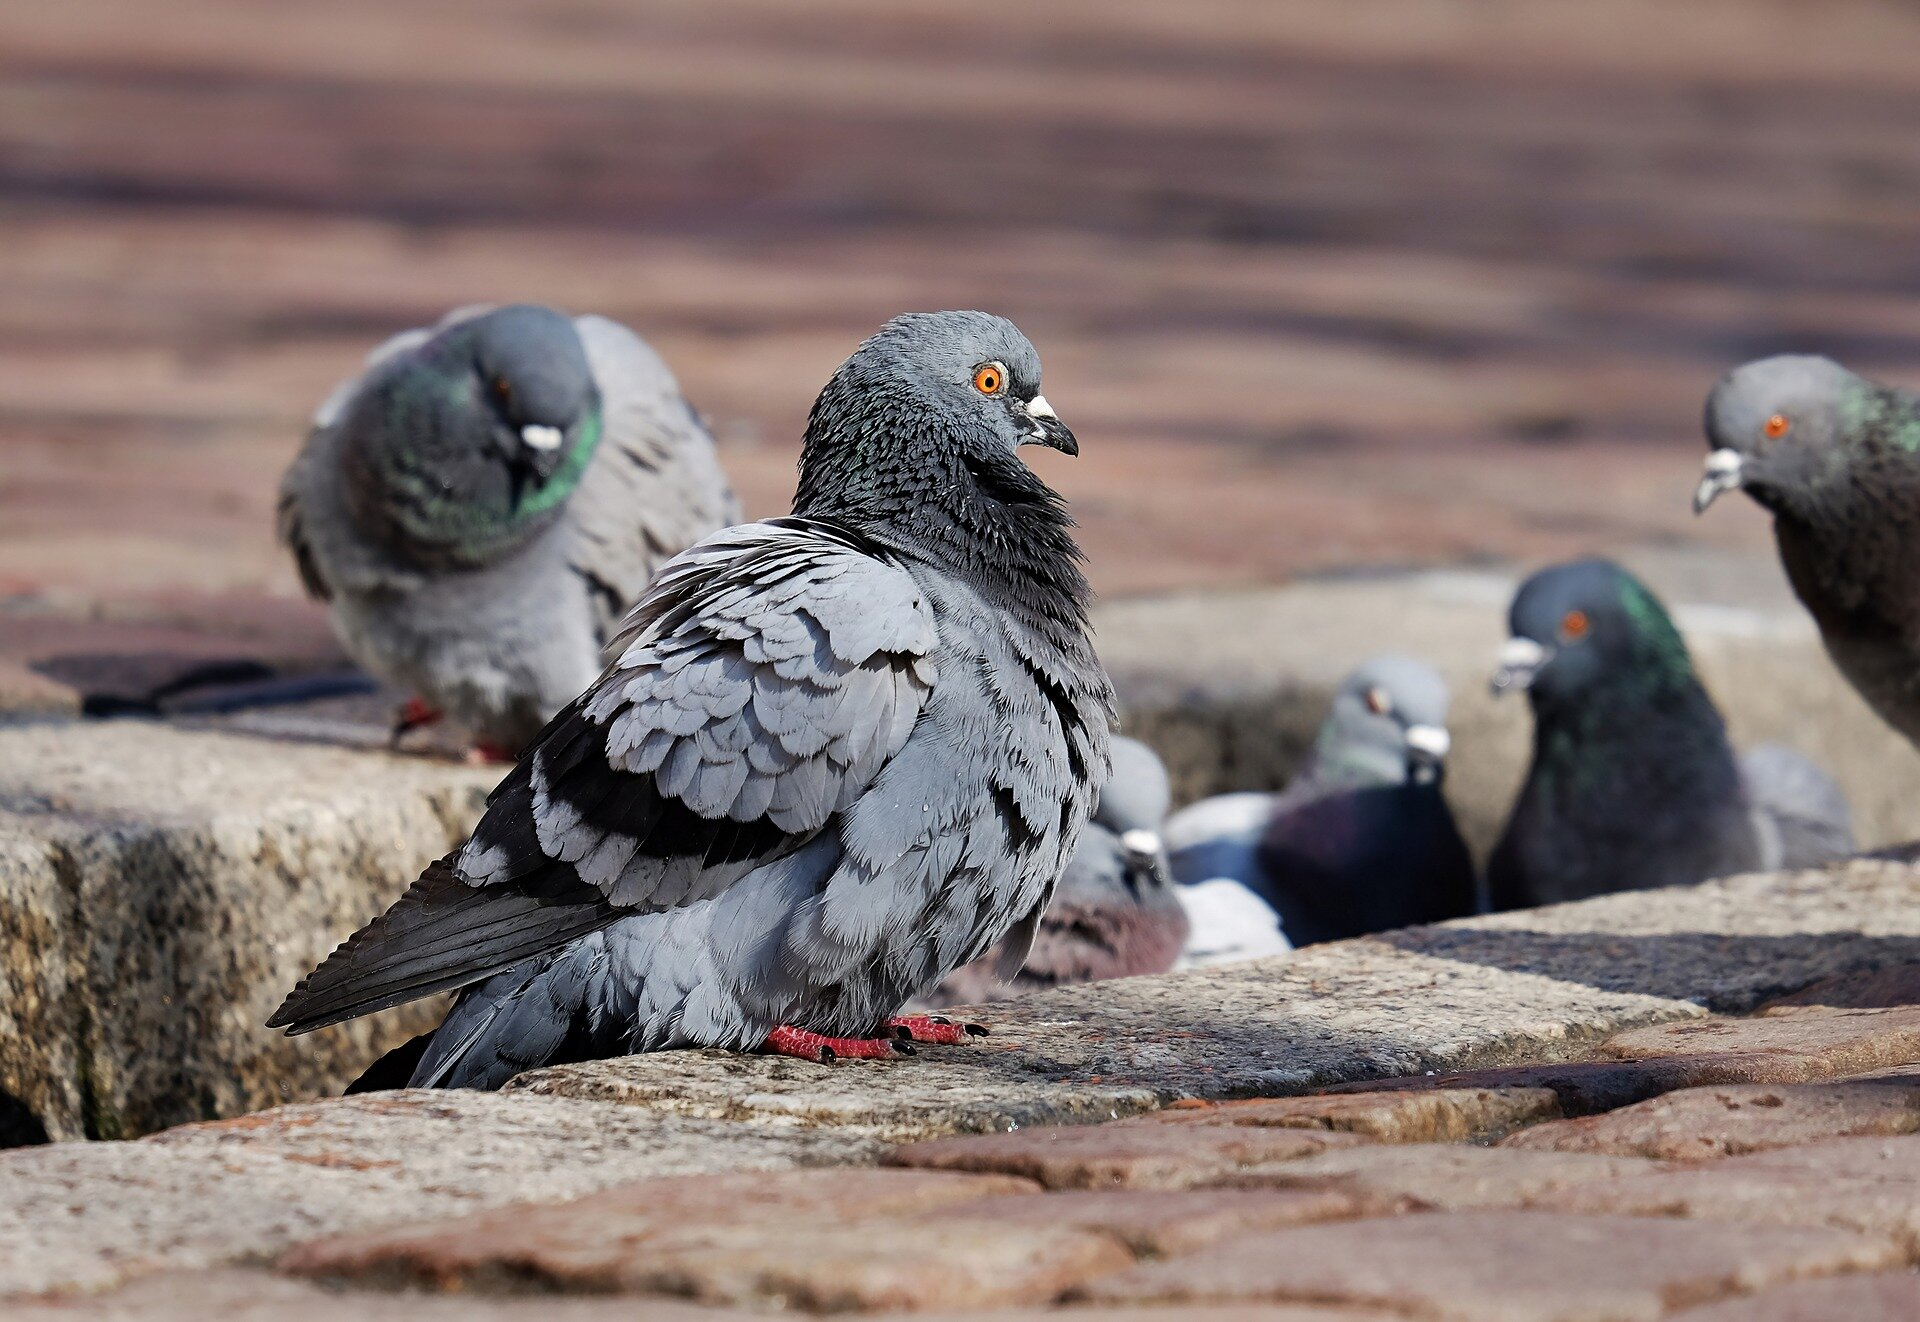 Pigeon pecking order found to be driven by weight